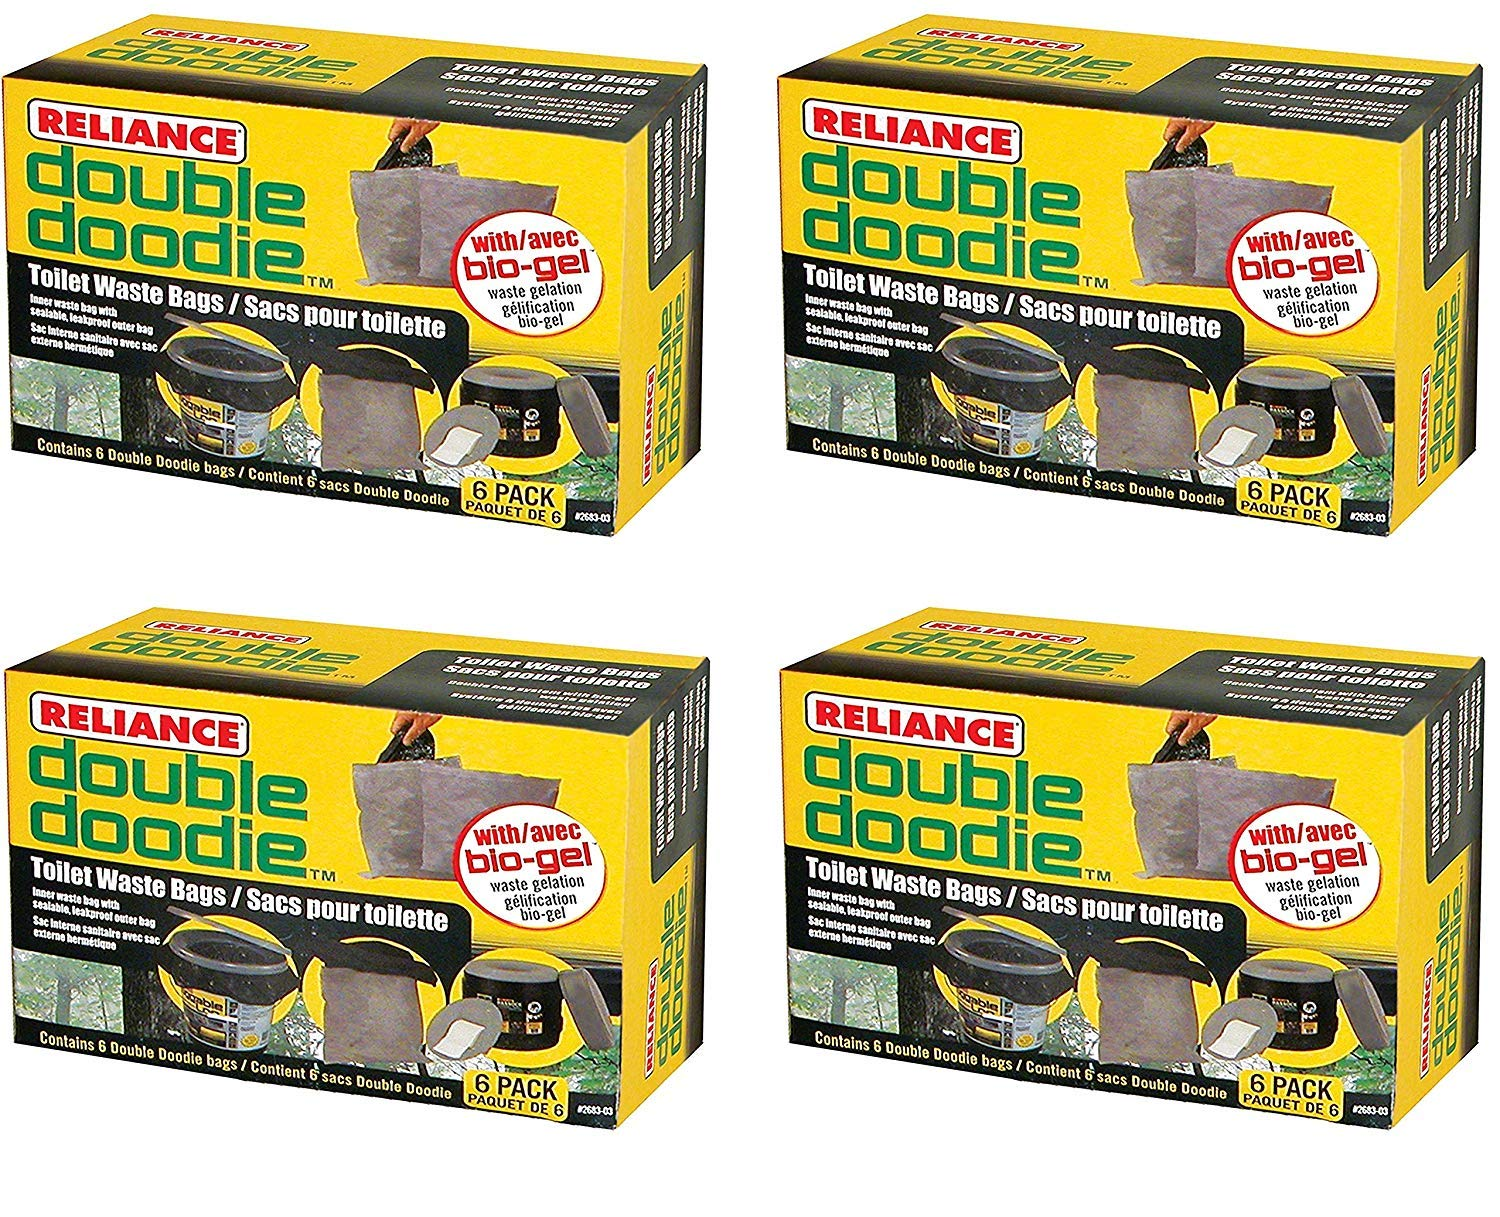 Reliance Products 2683-03 Double Doodie Toilet Waste Bags by Reliance Products